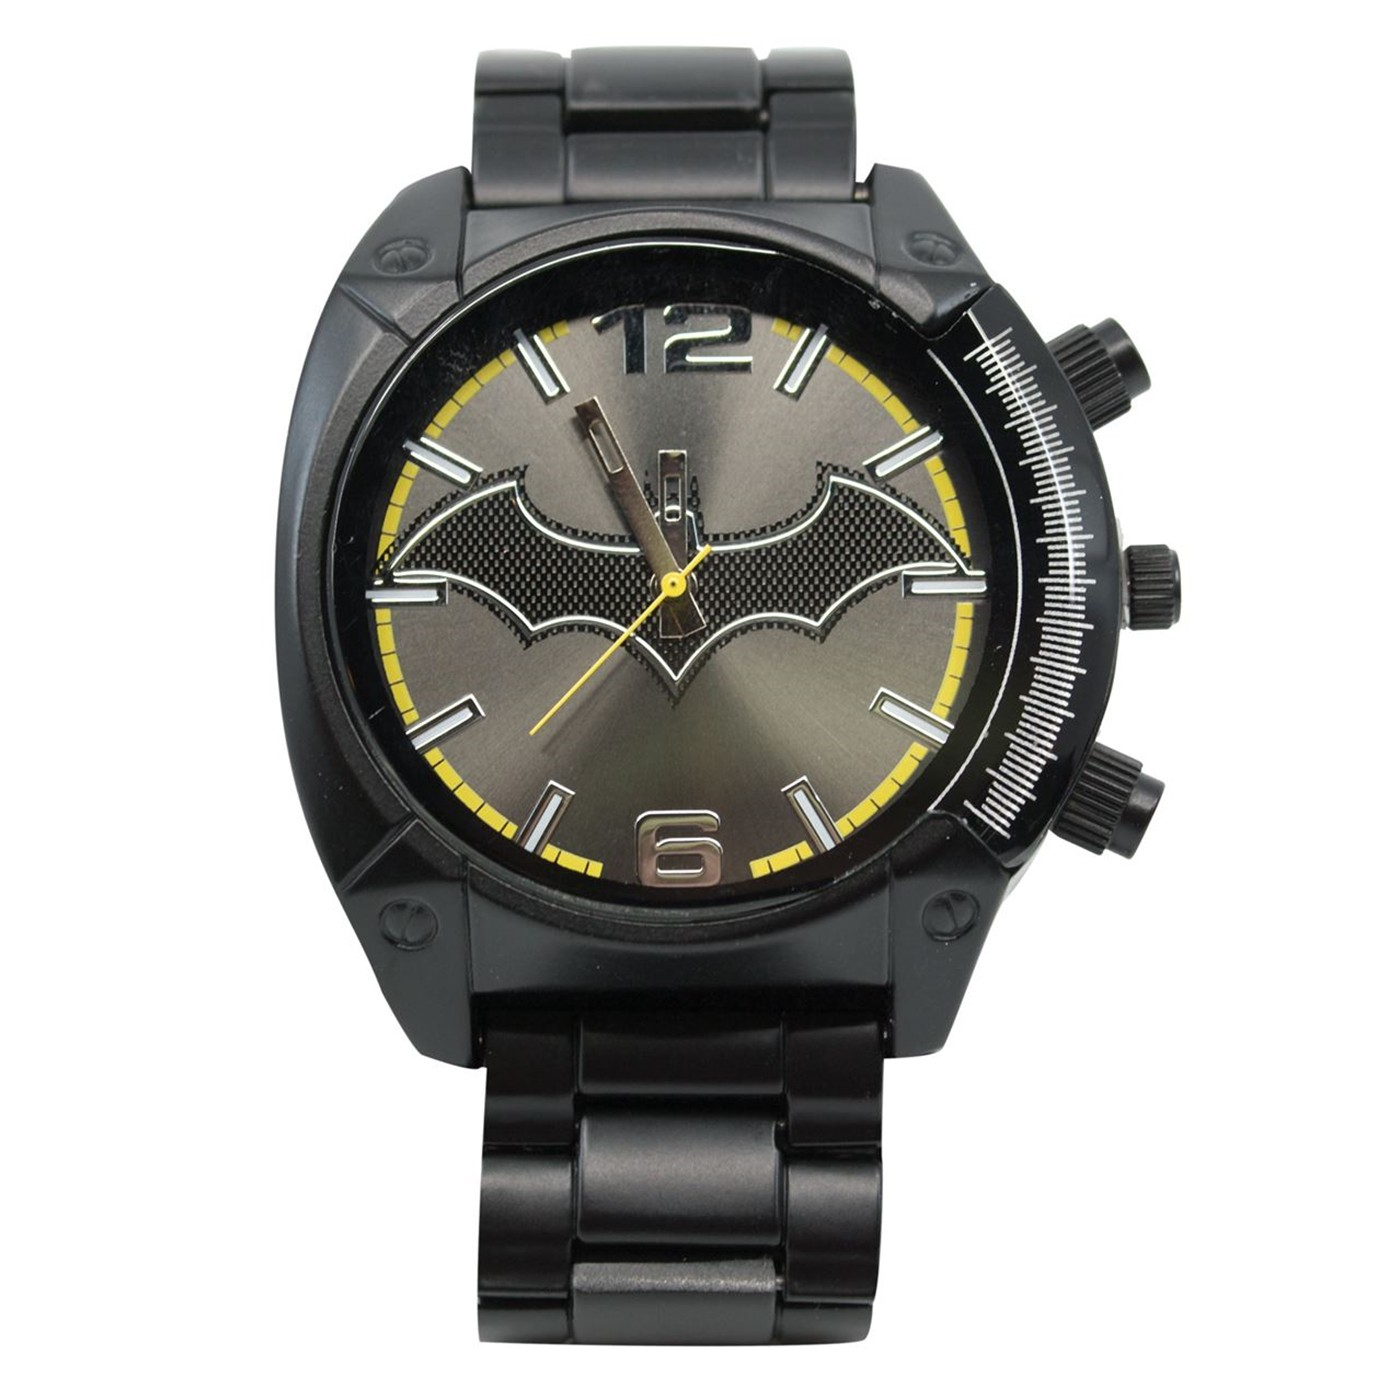 Batman Symbol Black Watch with Metal Band